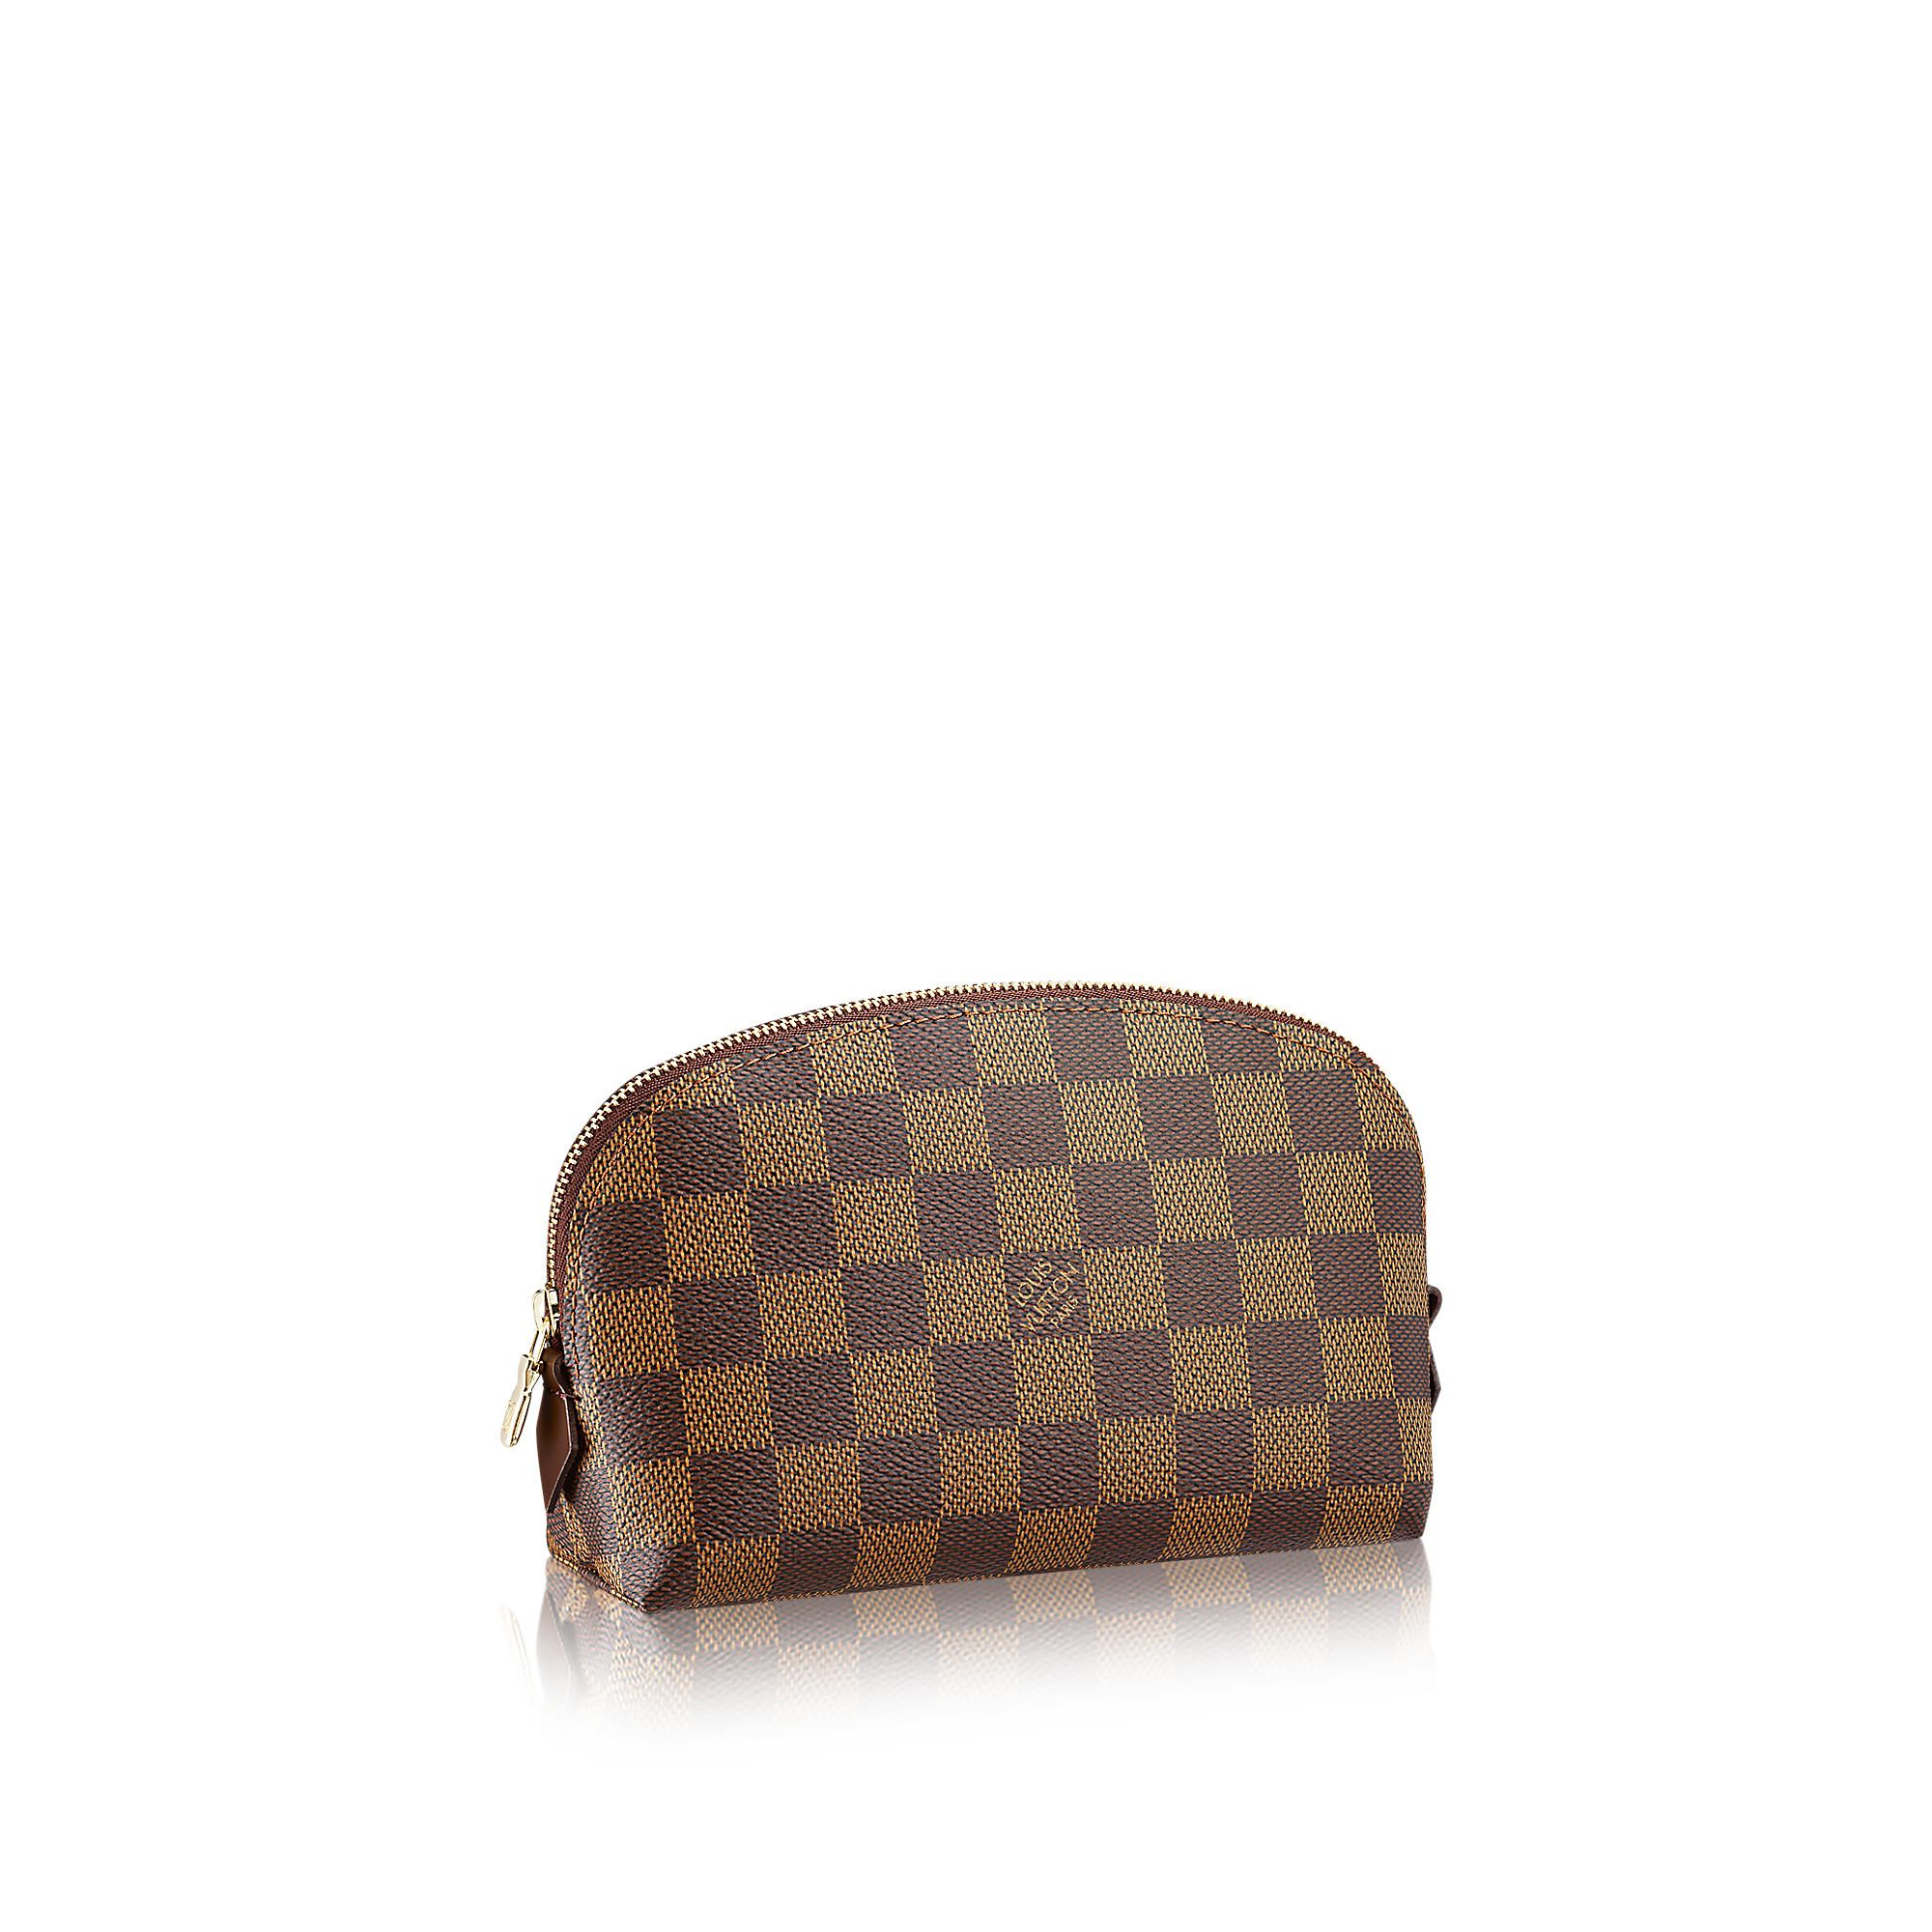 Louis Vuitton Cosmetic Pouch PM in Damier Ebene Canvas